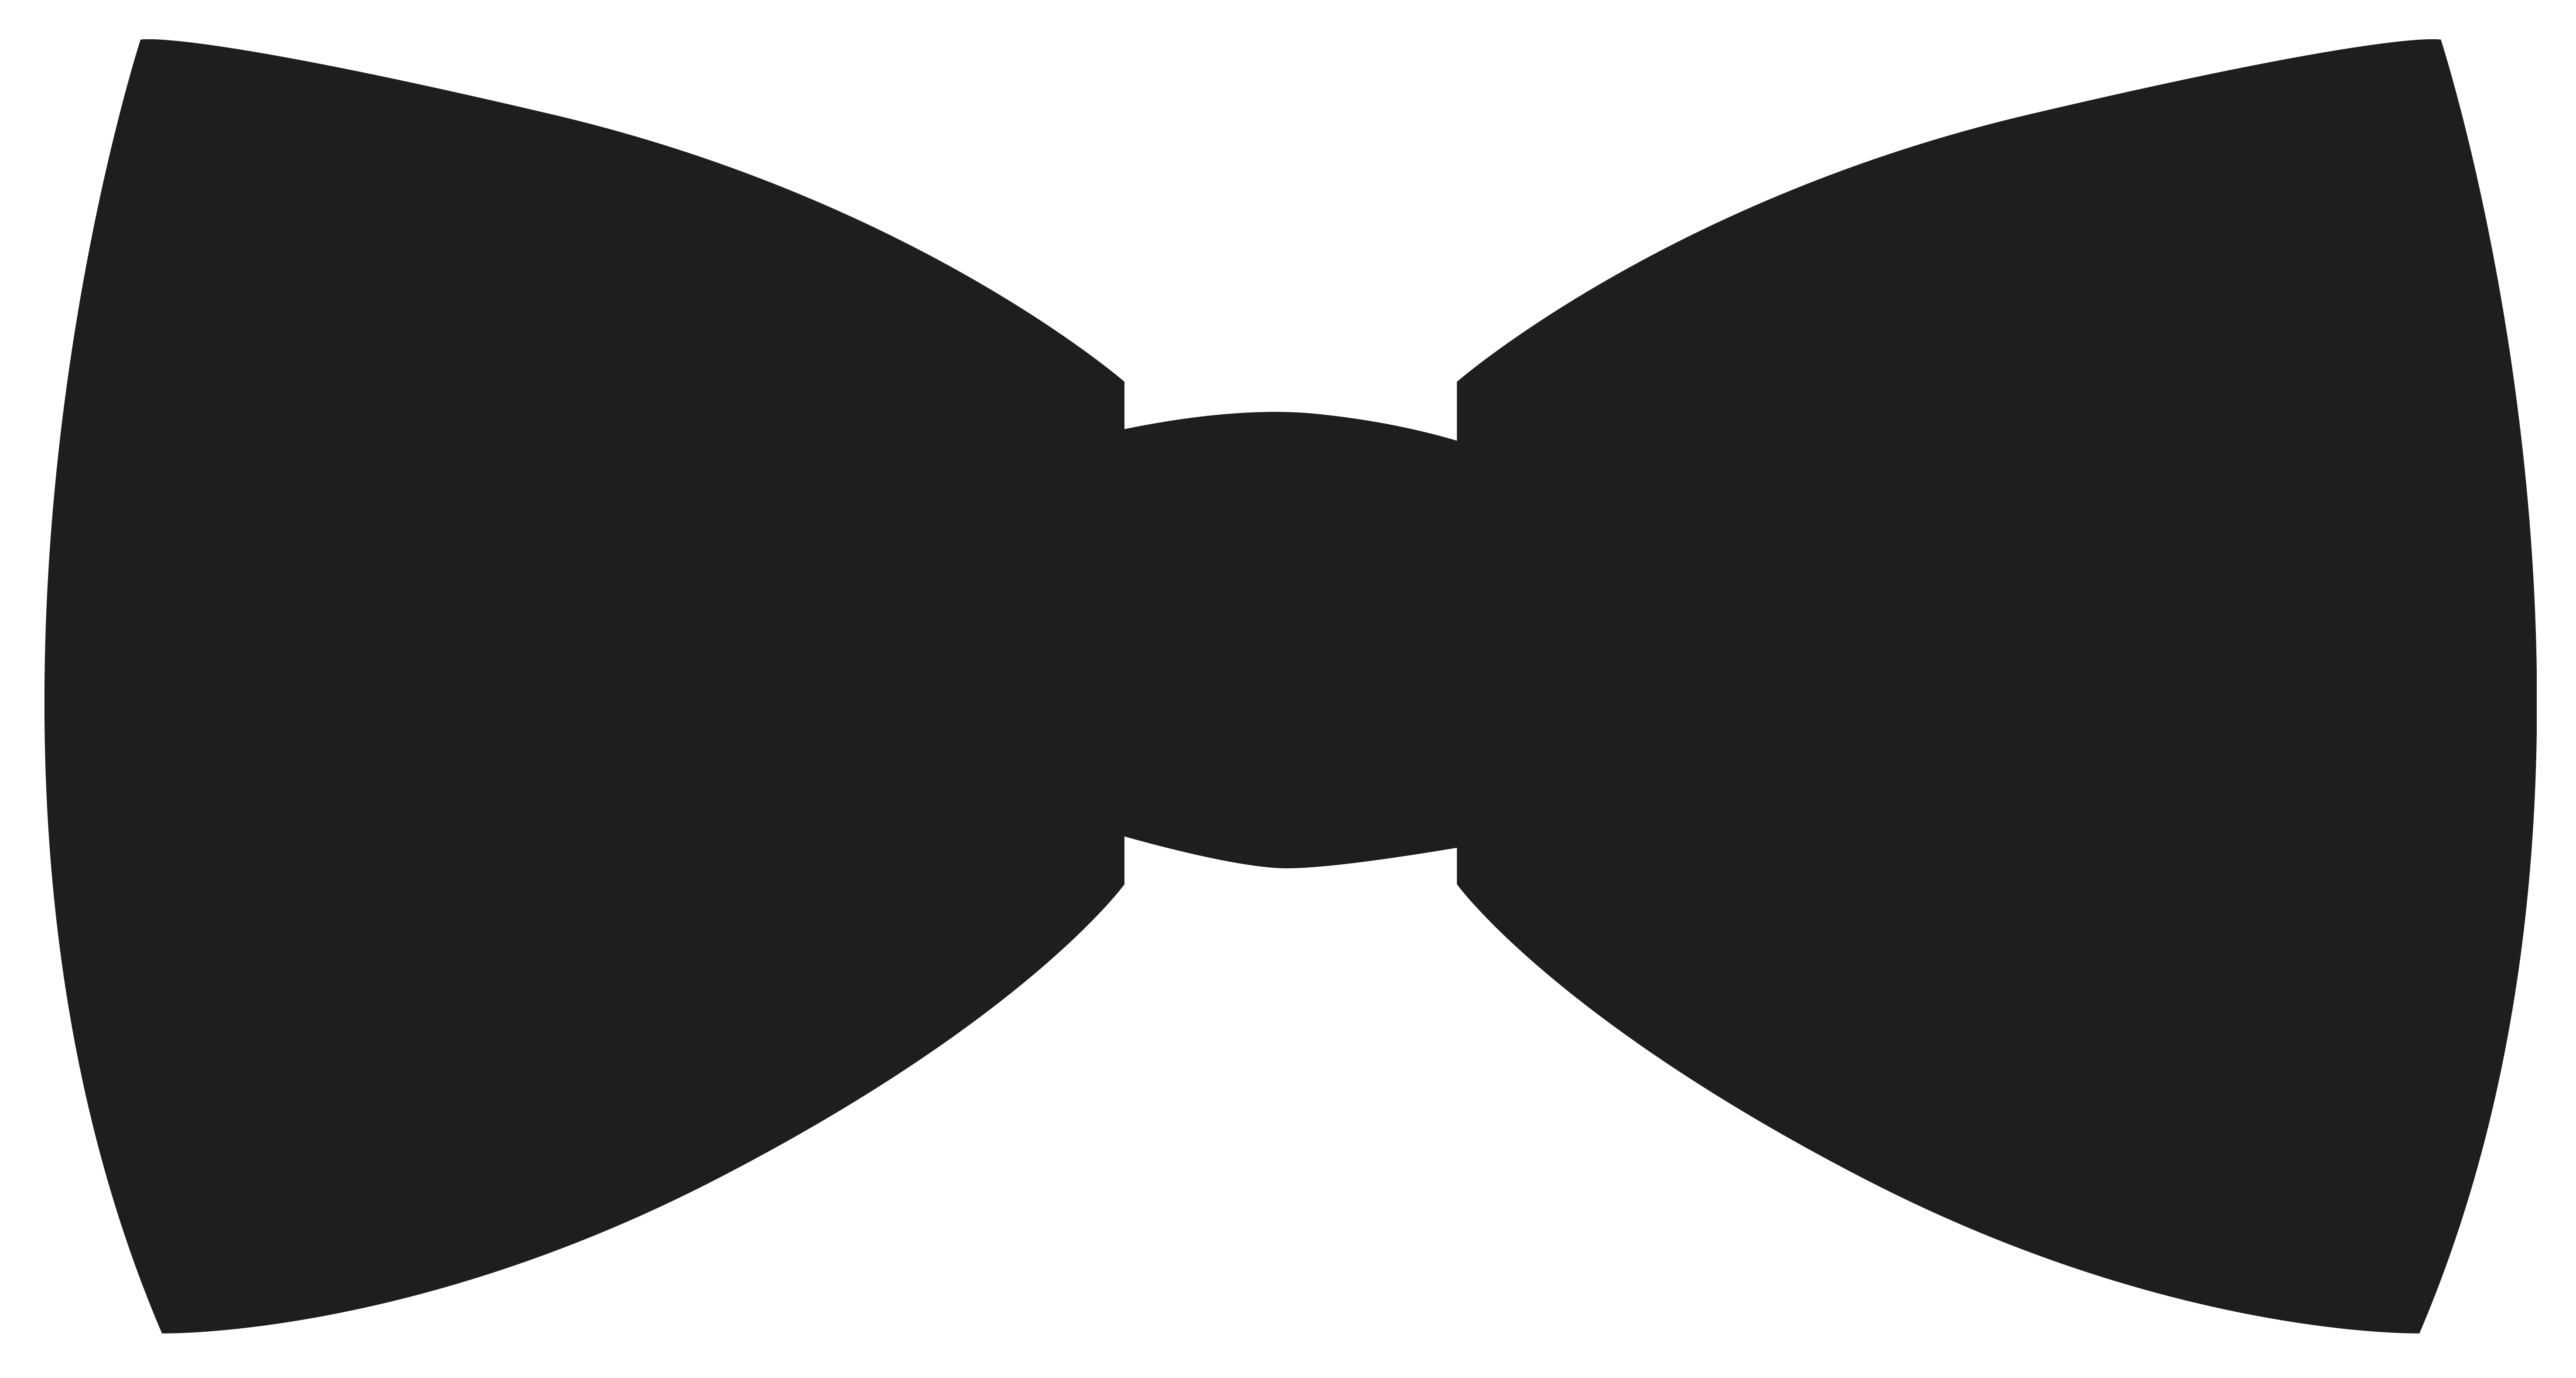 5906x3160 Bow Tie Clipart